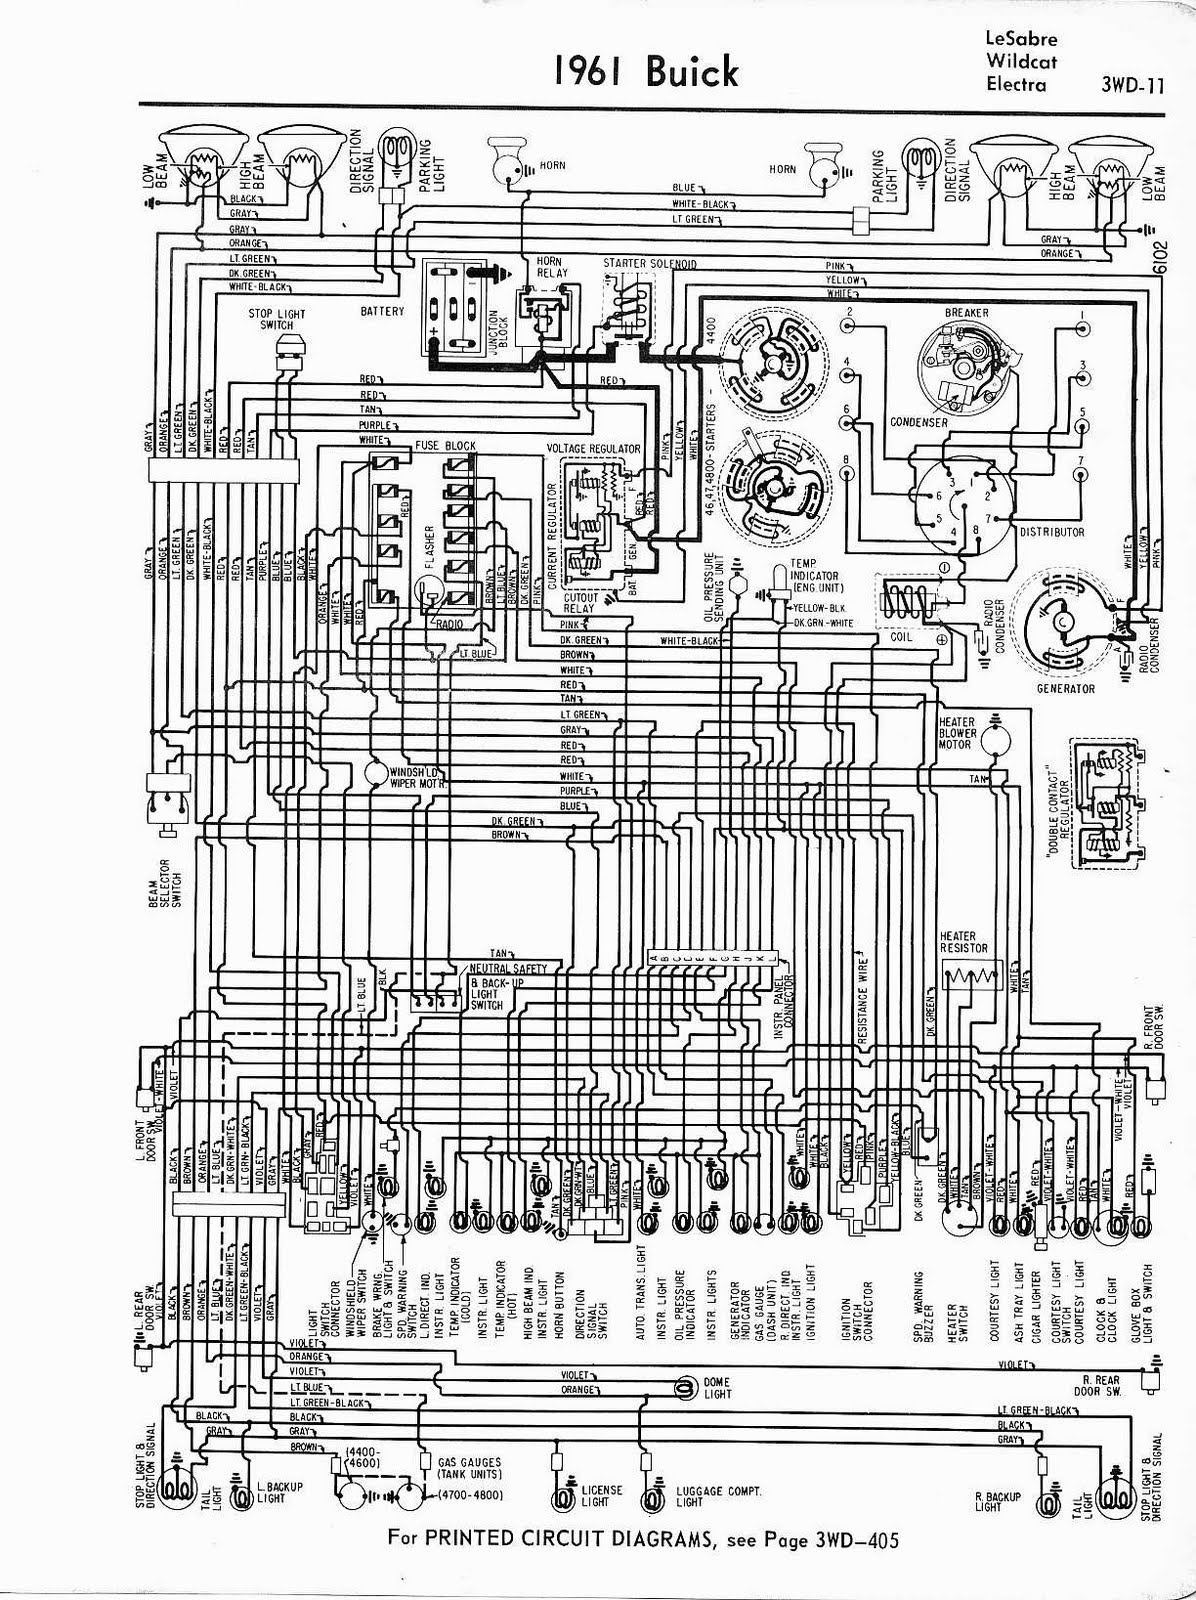 Buick Lesabre Wildcat Electra Wiring on 2002 Buick Century Engine Diagram